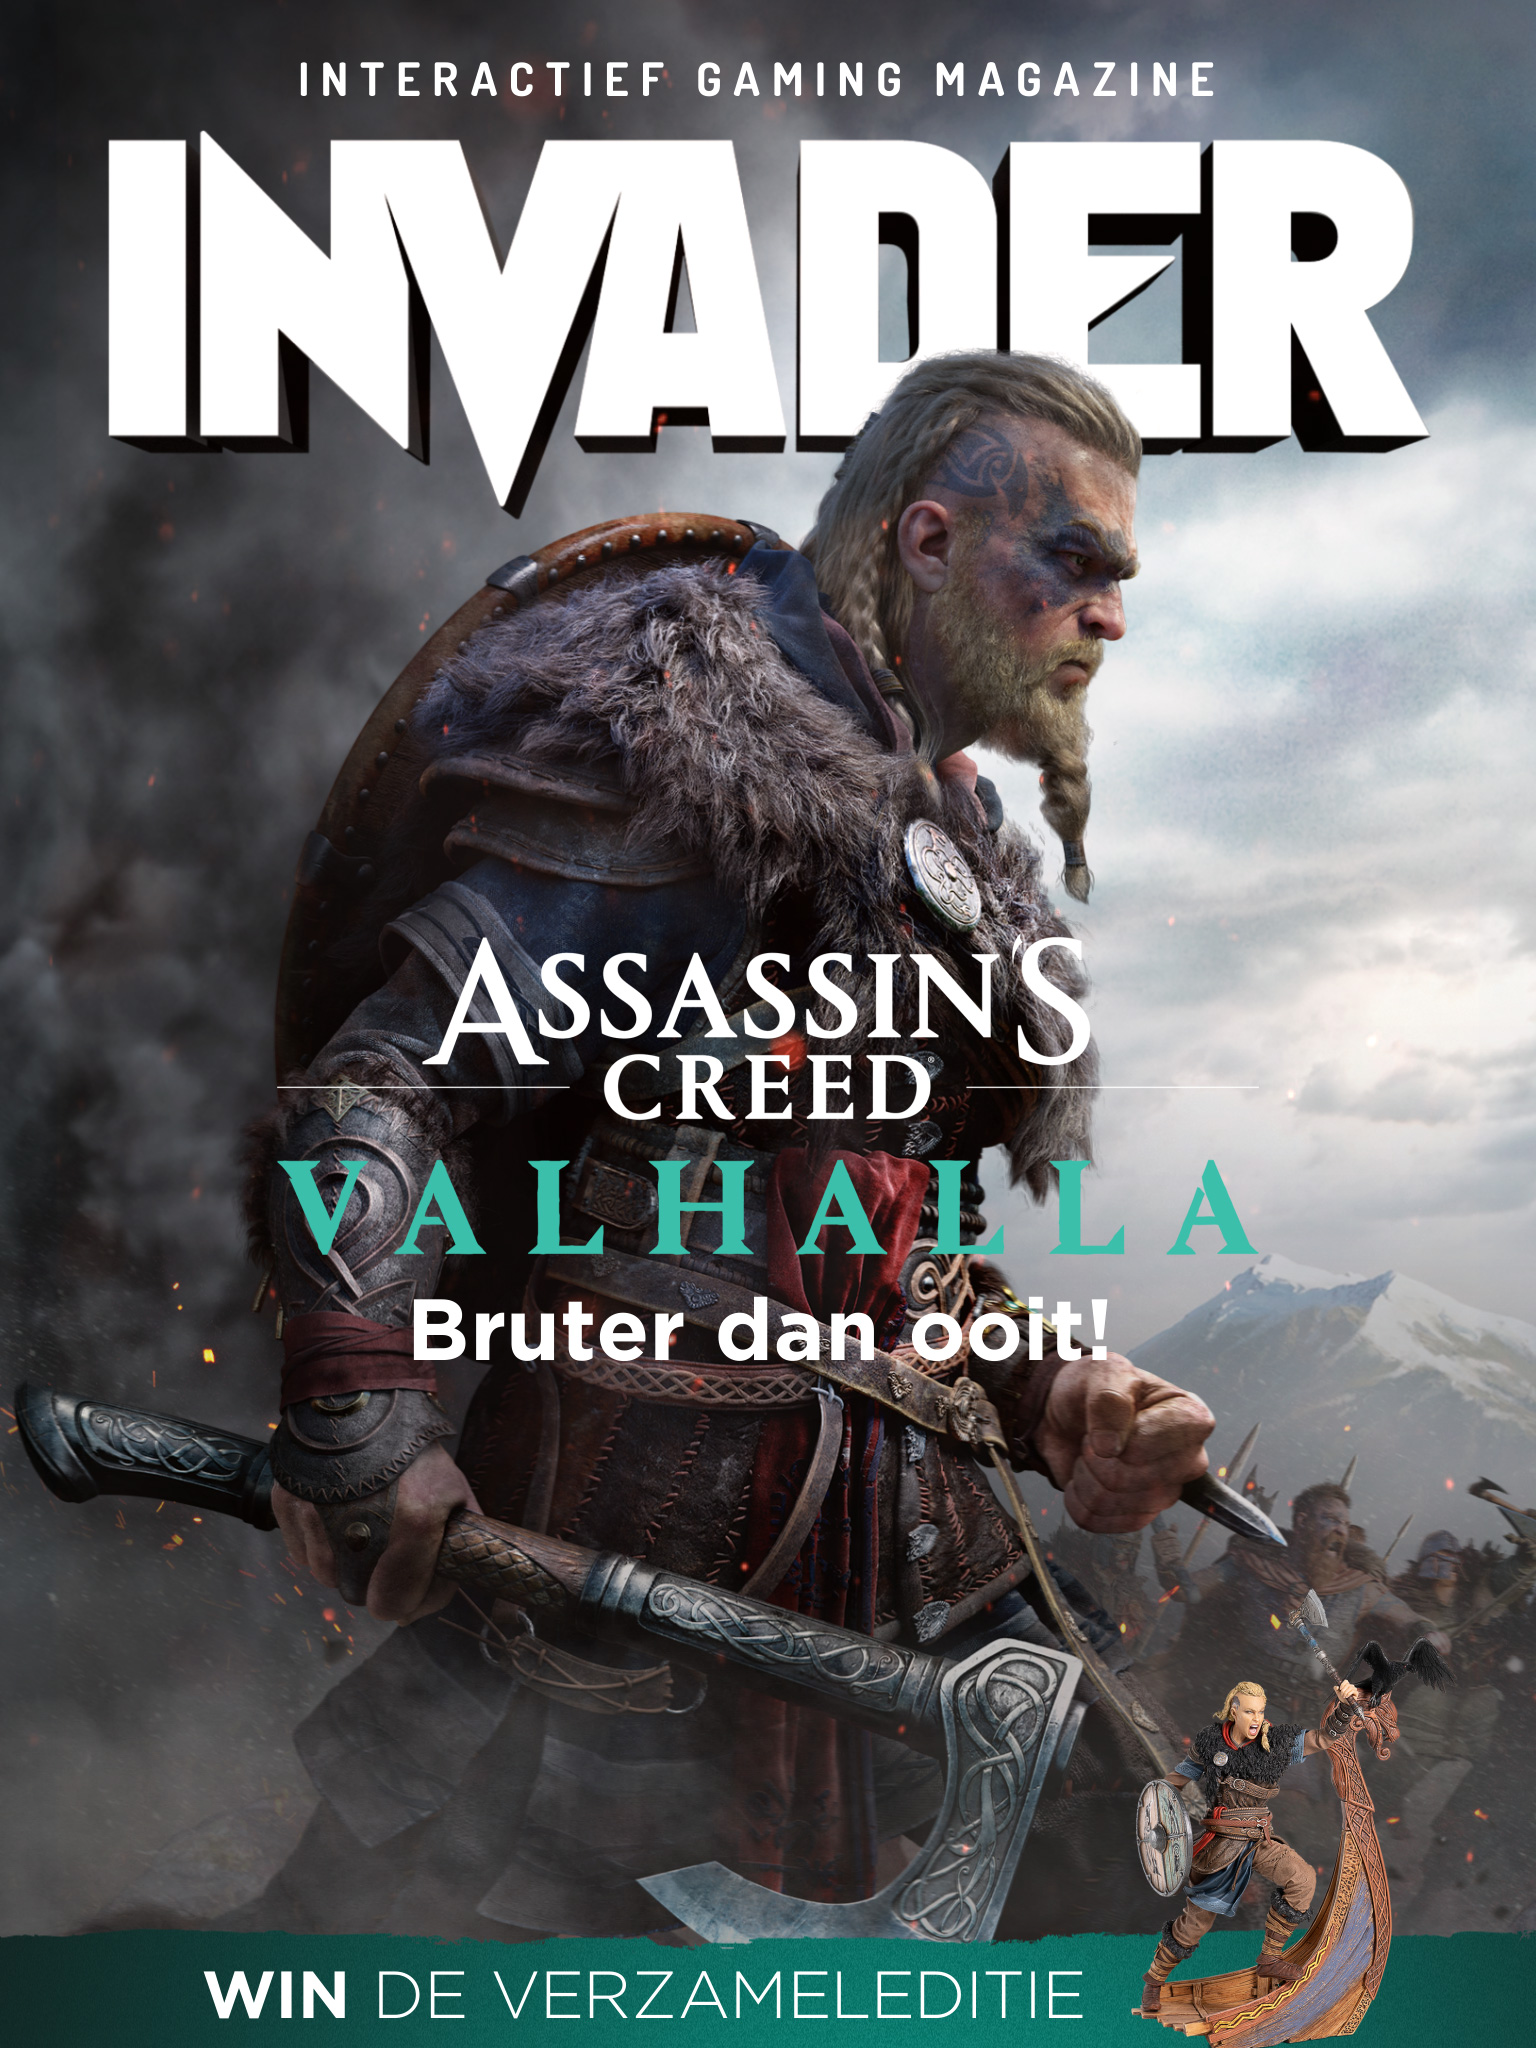 COVER INVADER75 AC Valhalla iPad 0 00 21 06